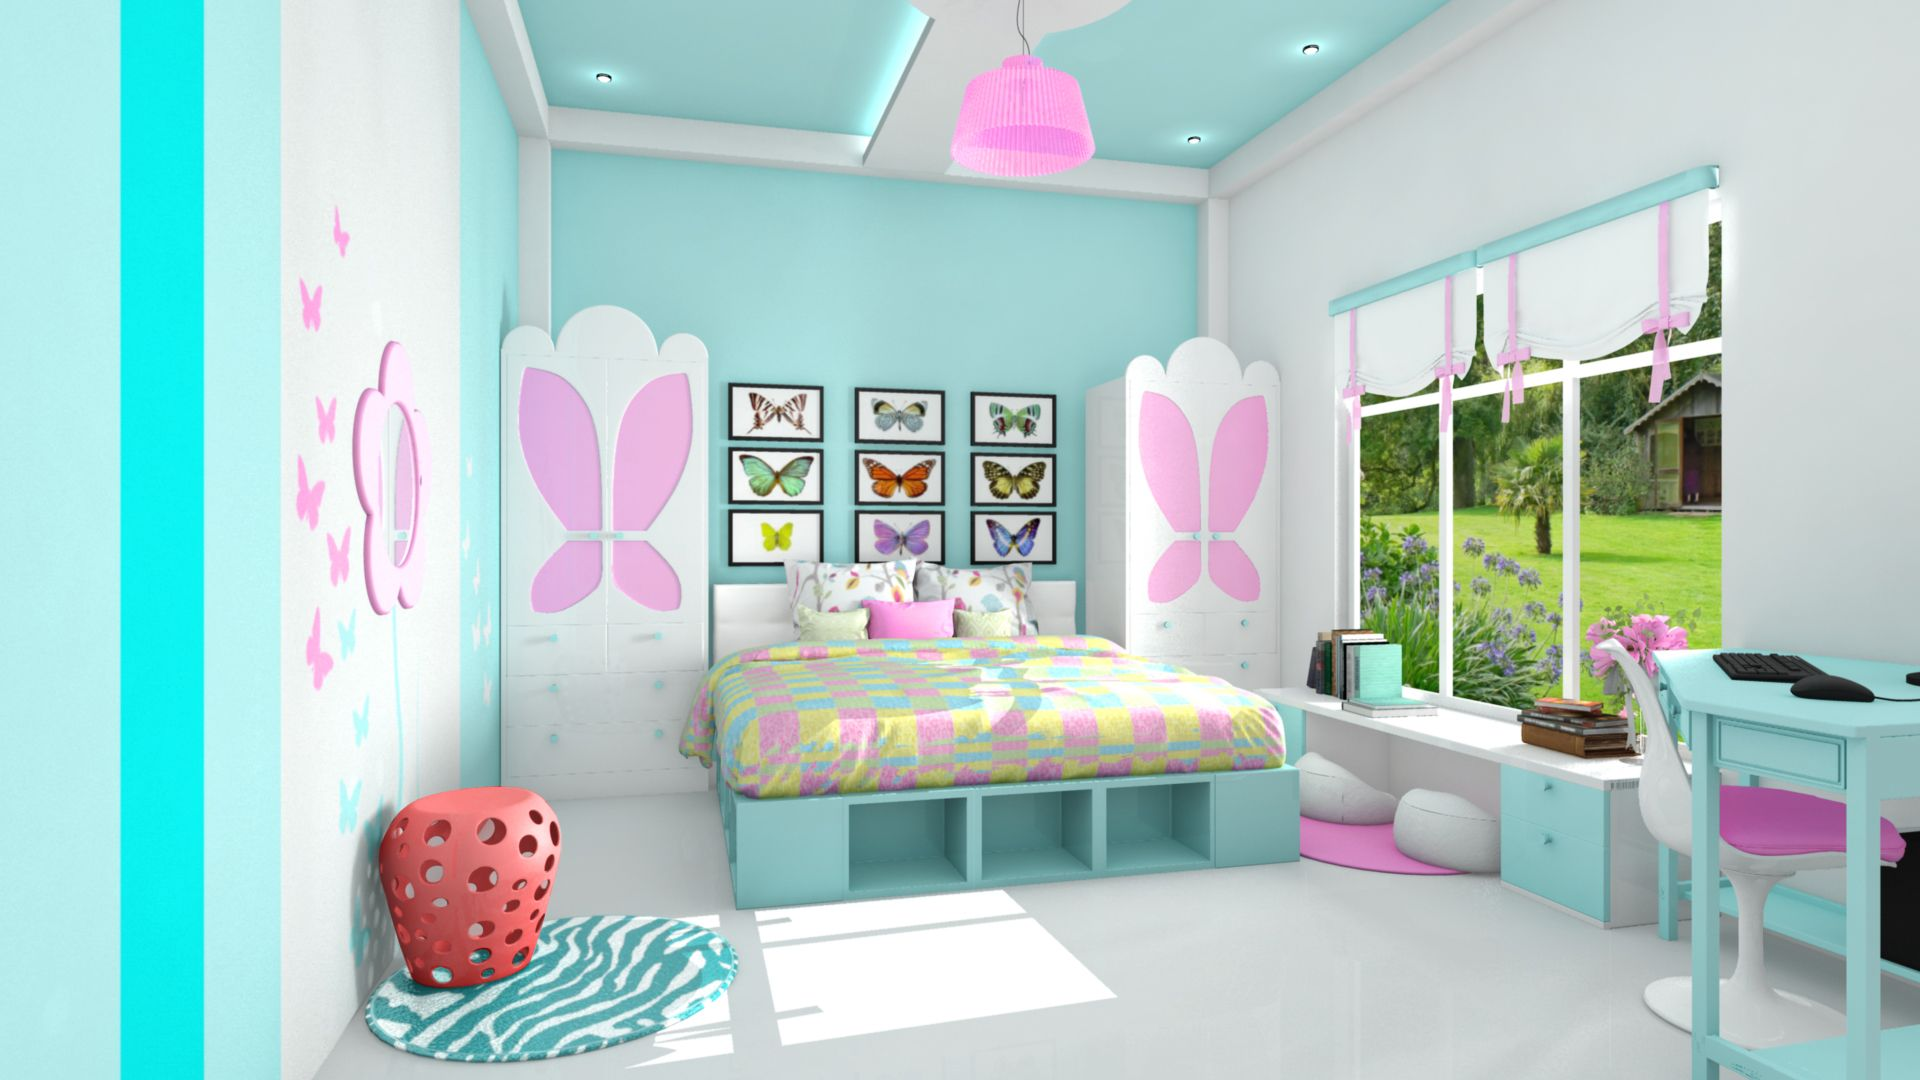 Ten yirs olde bed rooms design young girl bedroom for Bedroom ideas for a girl